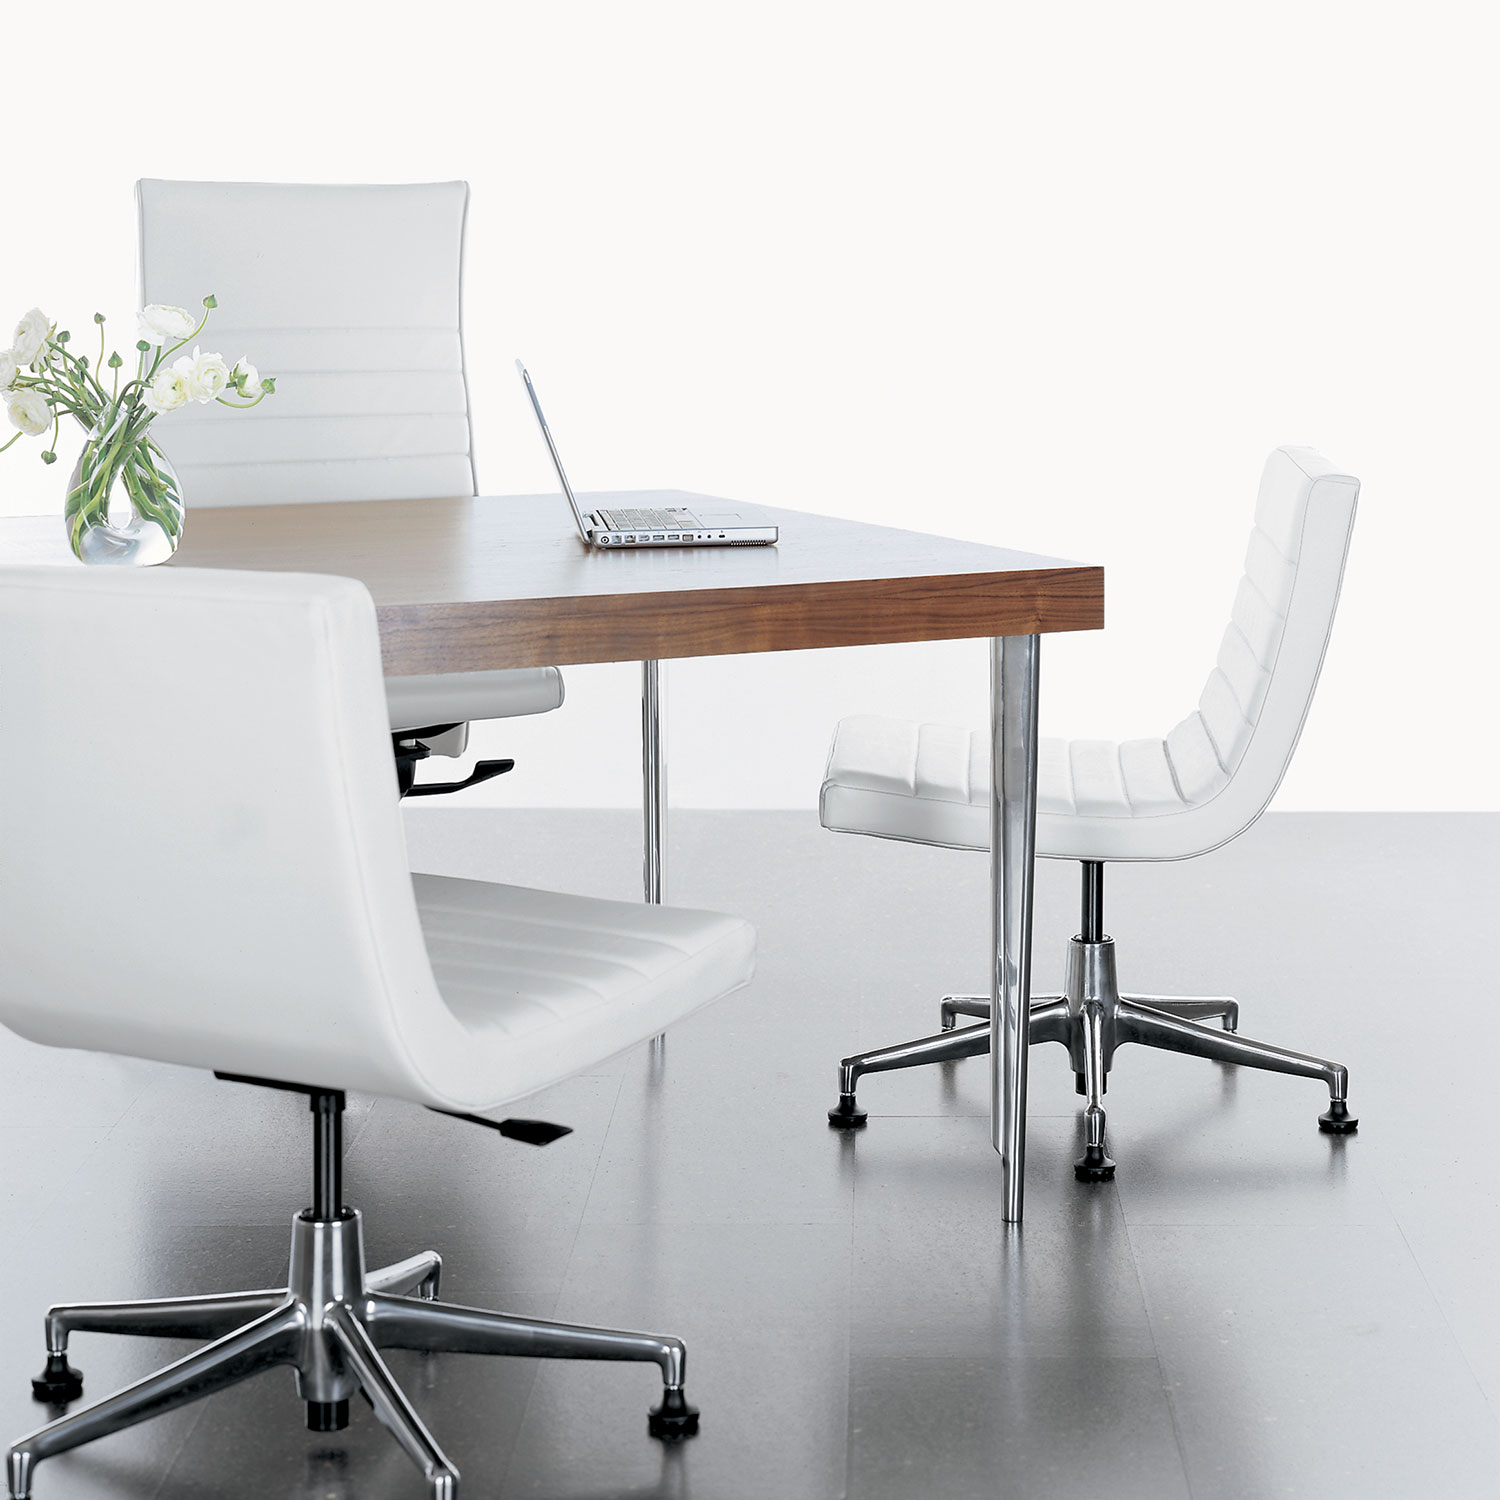 aim – office furniture group